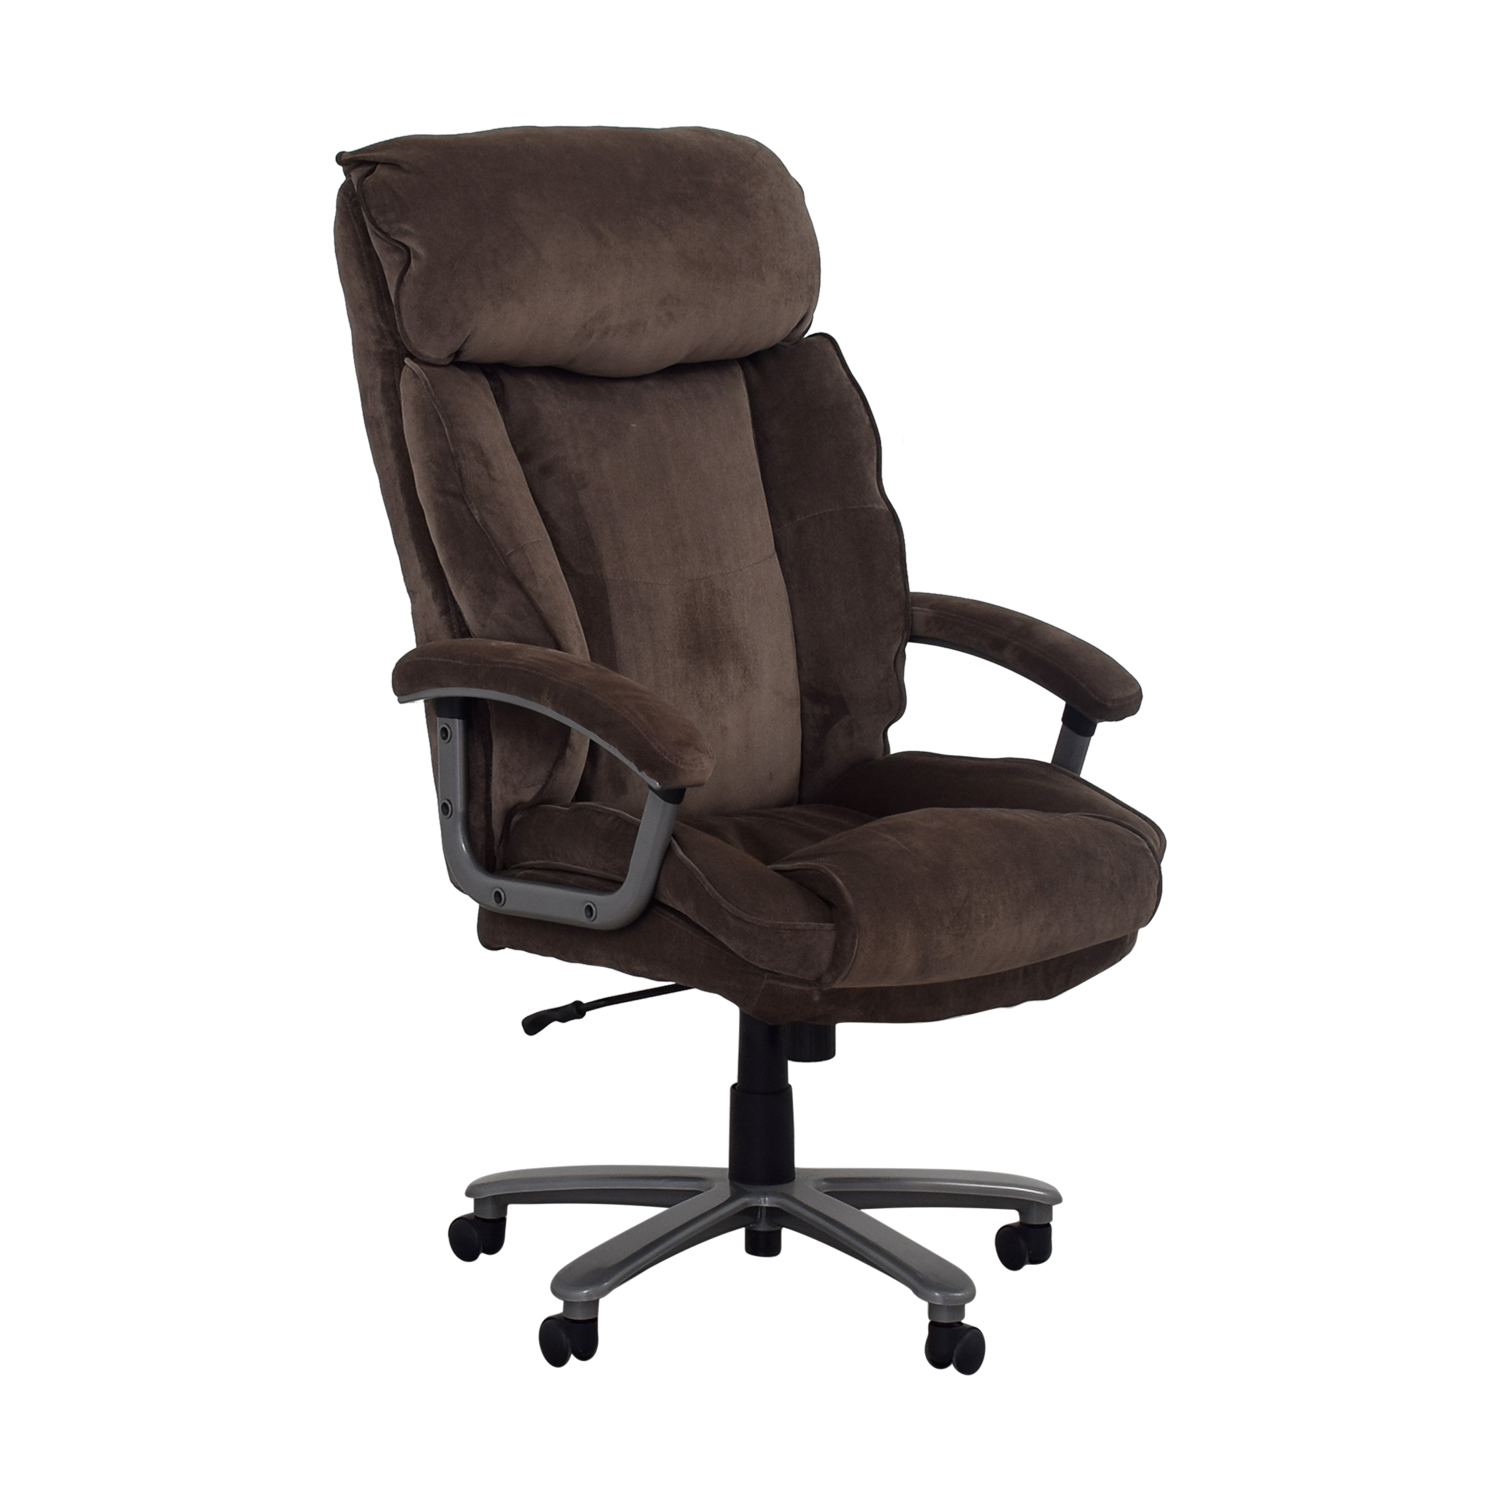 Ergonomic Chairs For Home 78 Off Office Depot Office Depot Grey Office Chair Chairs